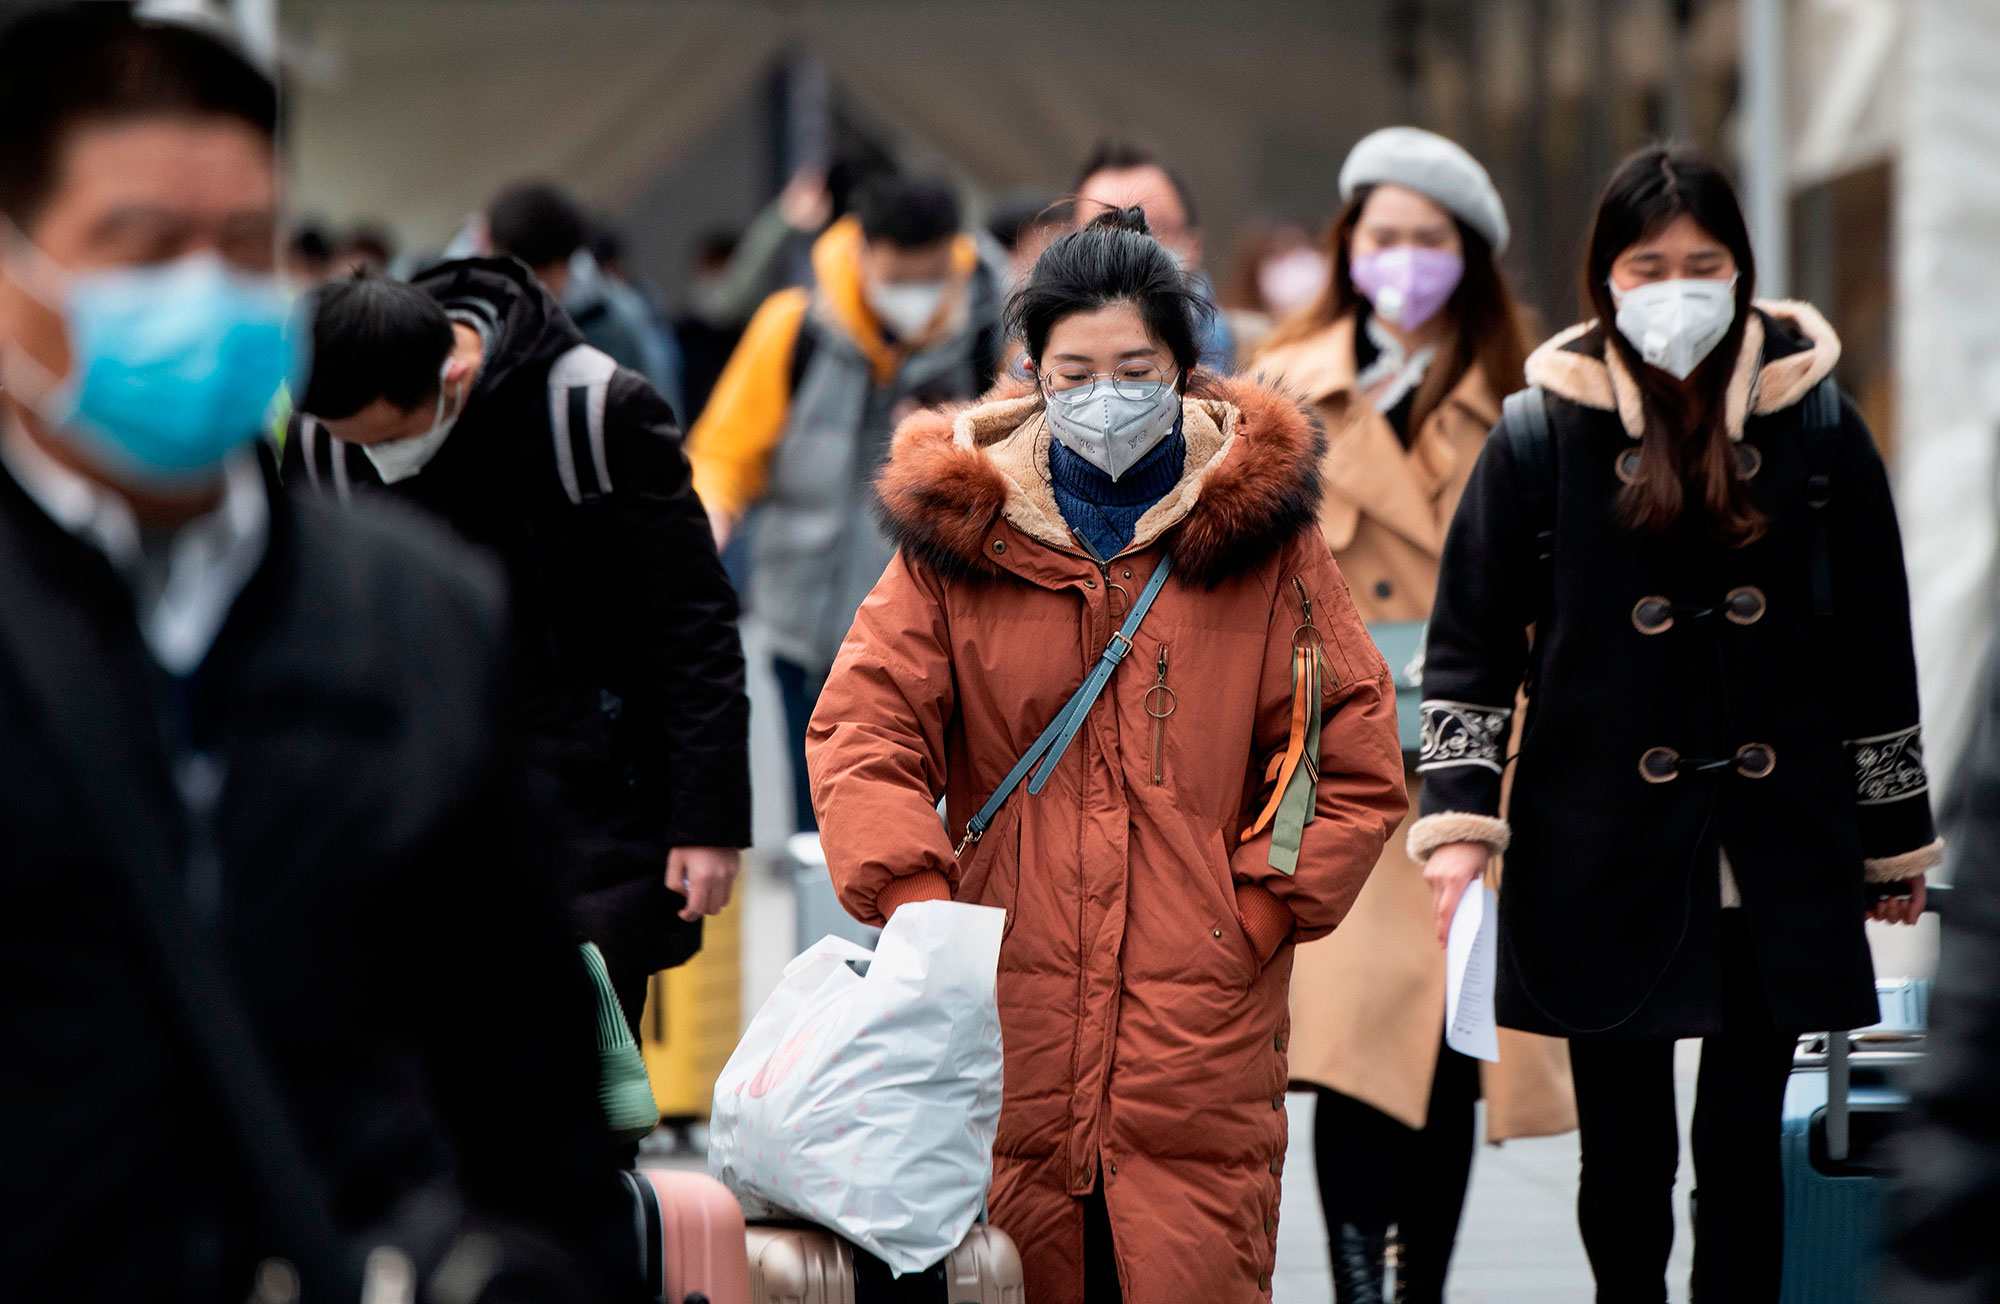 People wear protective face masks as they enter a railway station in Shanghai on Monday.